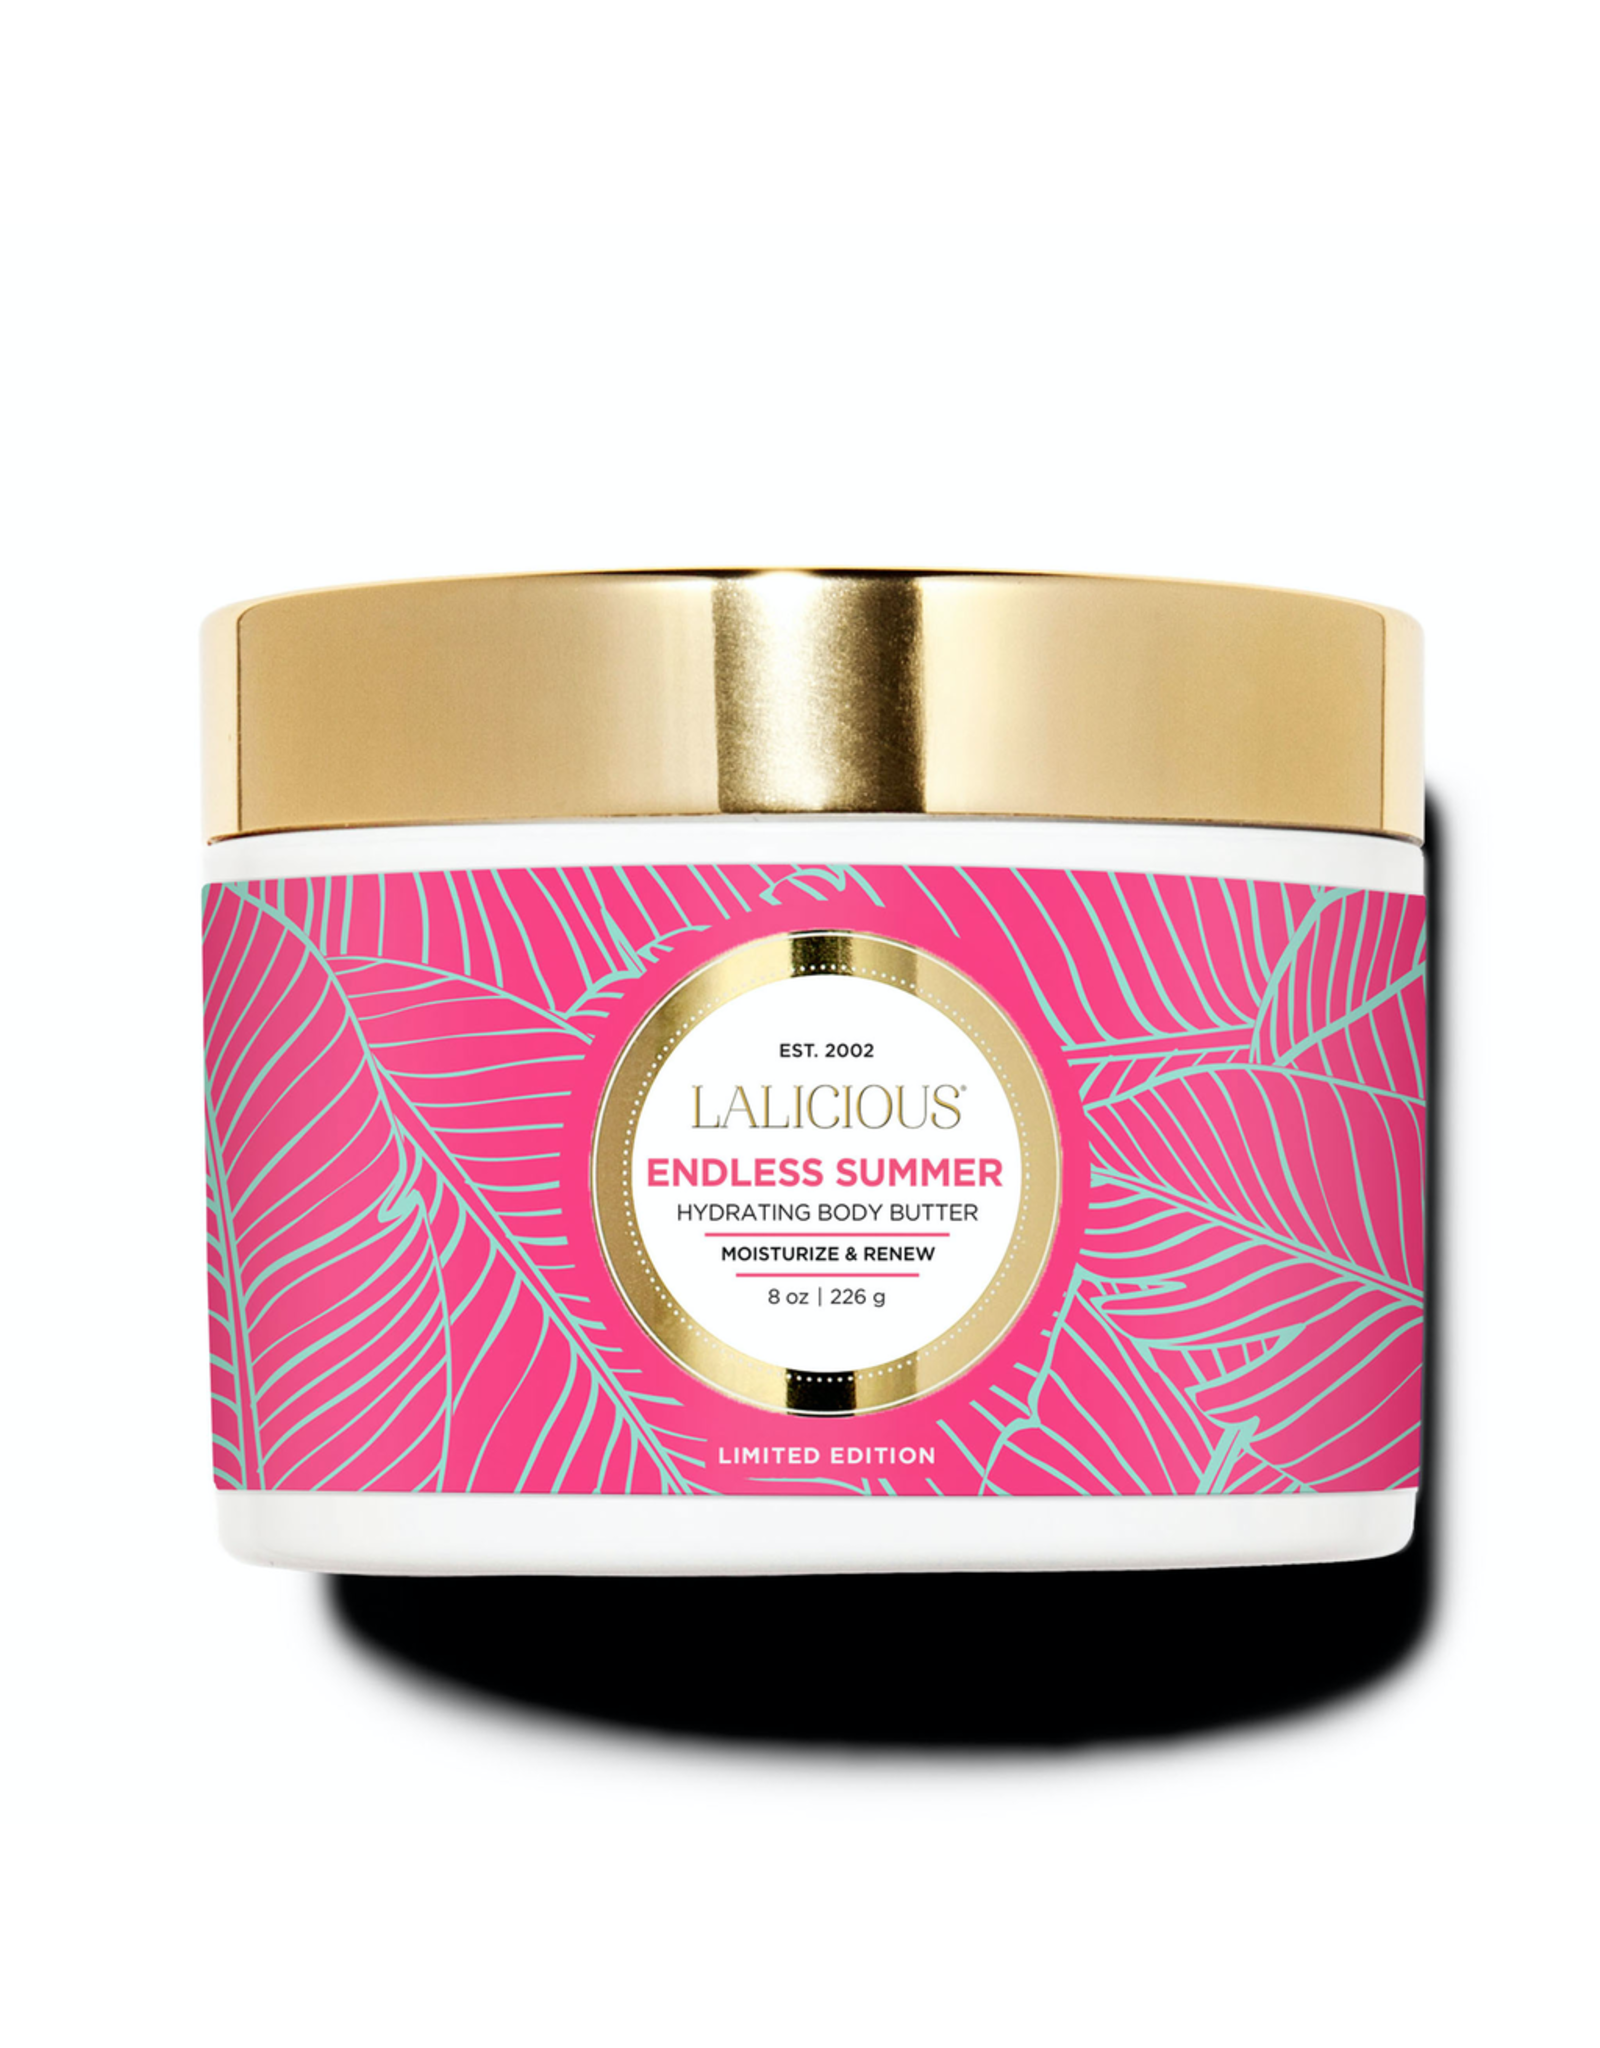 LALICIOUS Endless Summer Body Butter